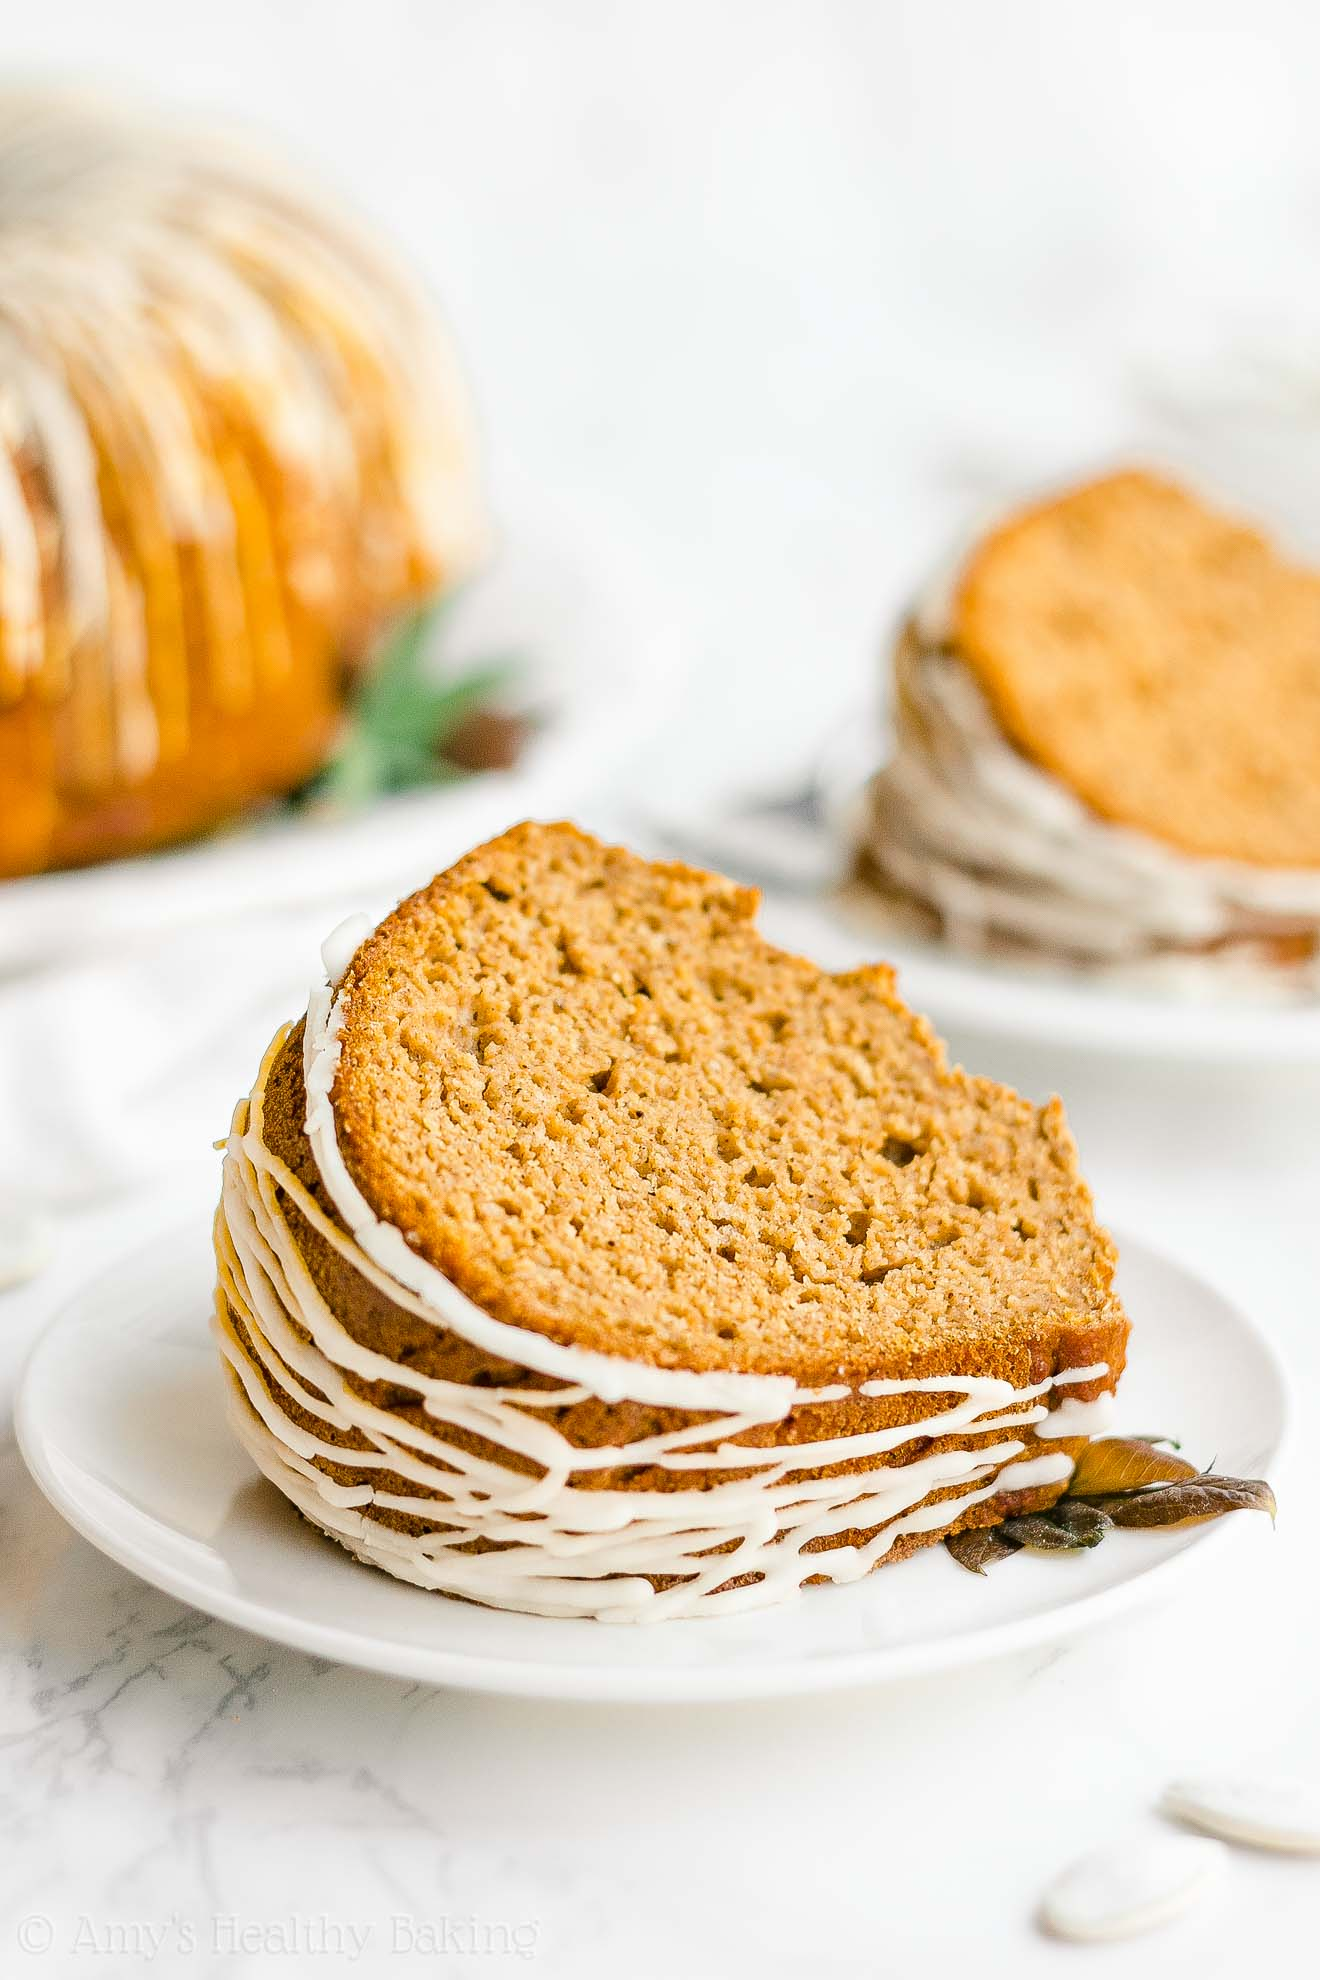 Easy Healthy Low Calorie Pumpkin Bundt Cake with Weight Watchers Points